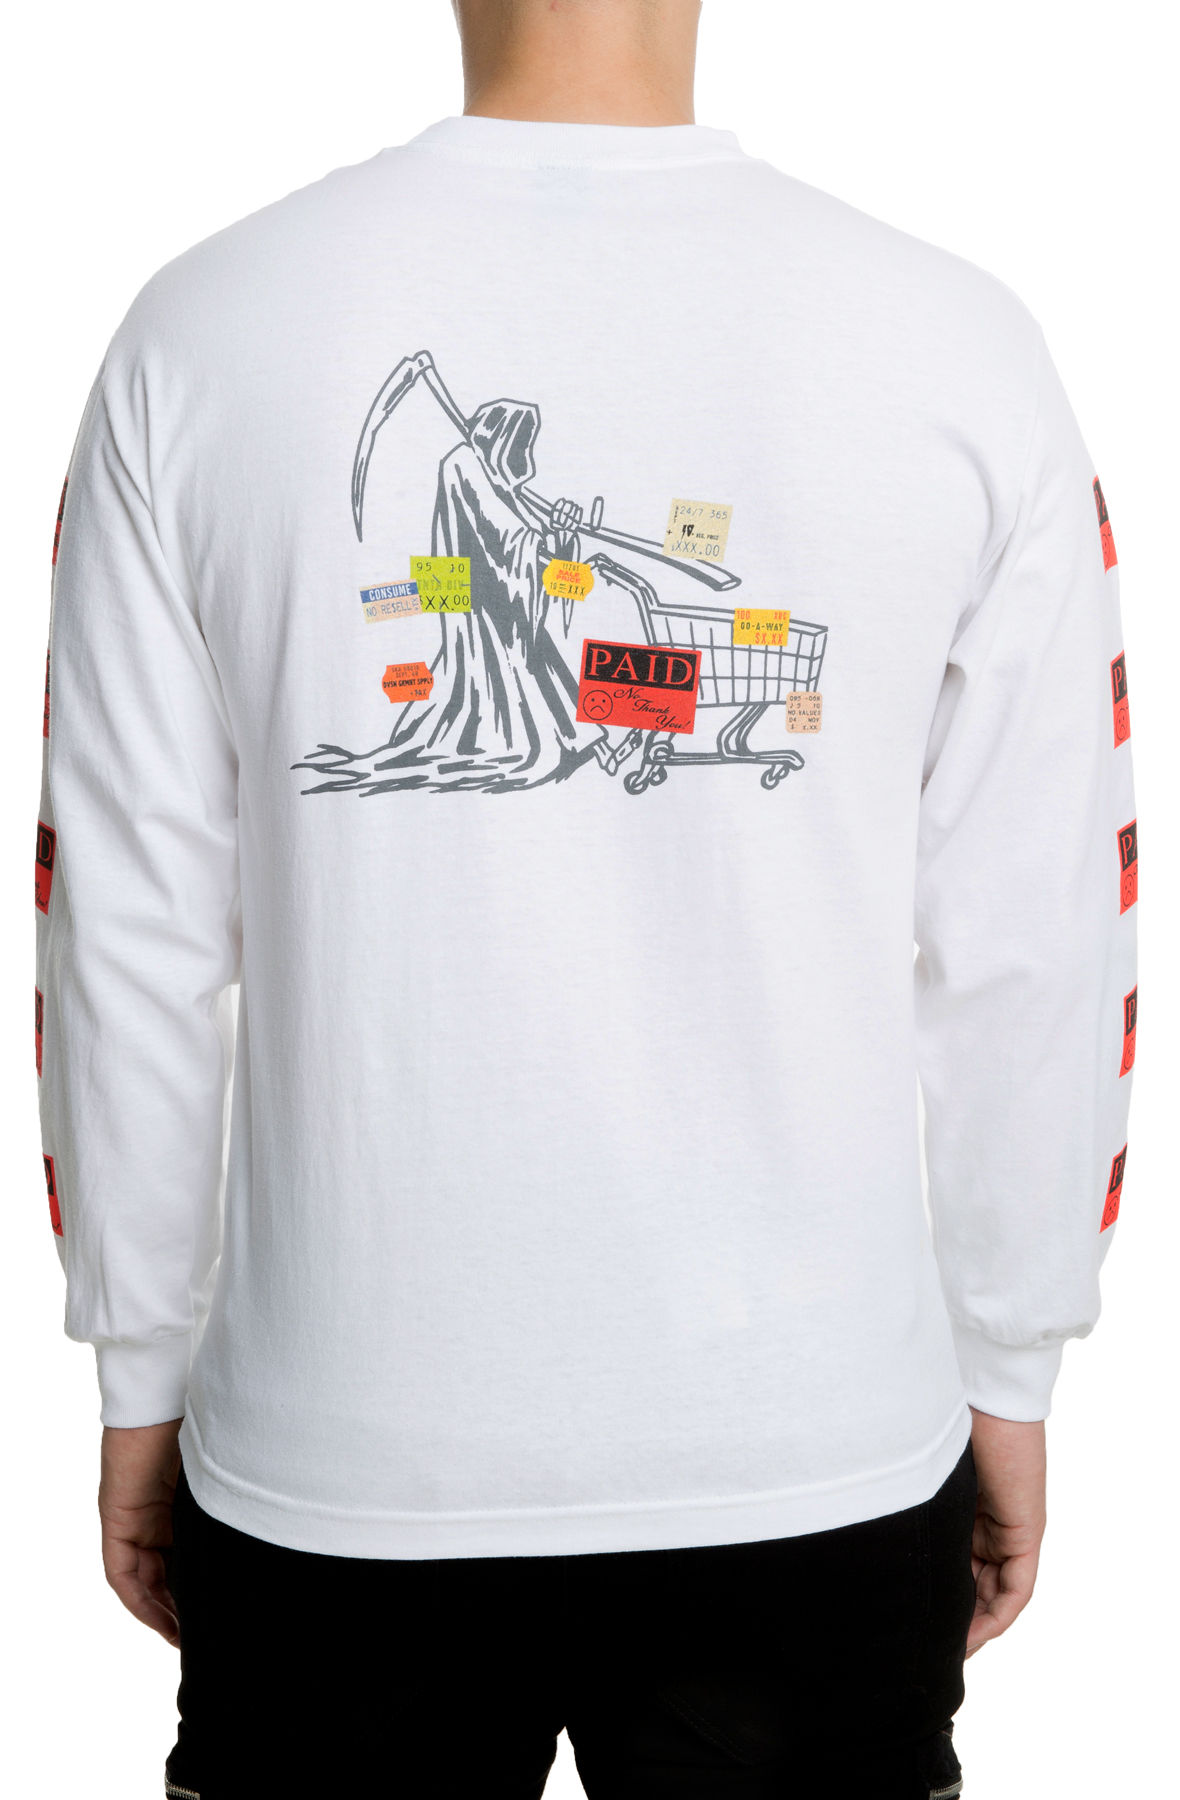 The Paid in Full L/S Tee in White